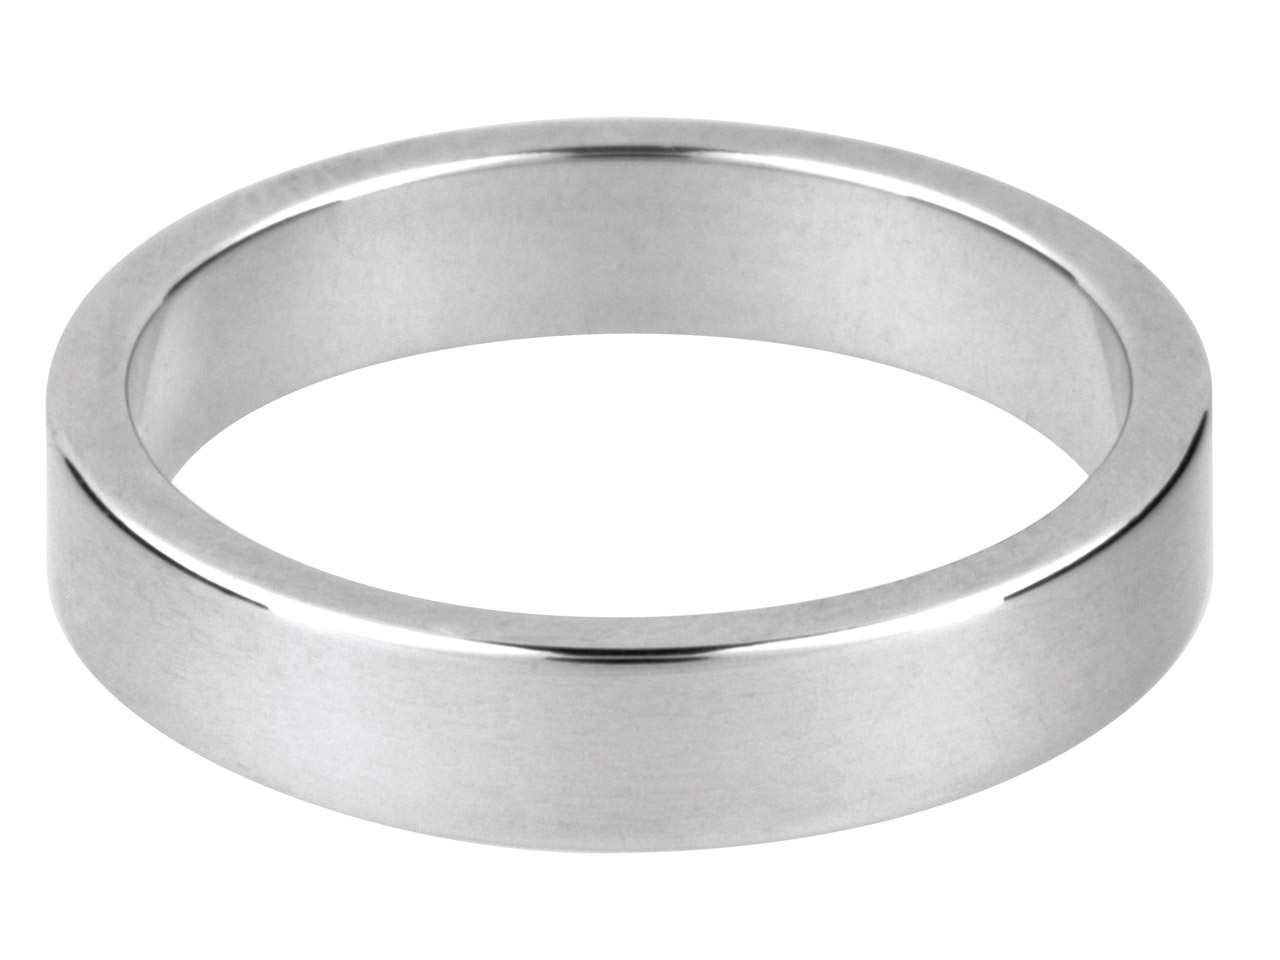 Silver Flat Wedding Ring 10mm, Size W, 9.8g Heavy Weight, Hallmarked,   Wall Thickness 1.34mm